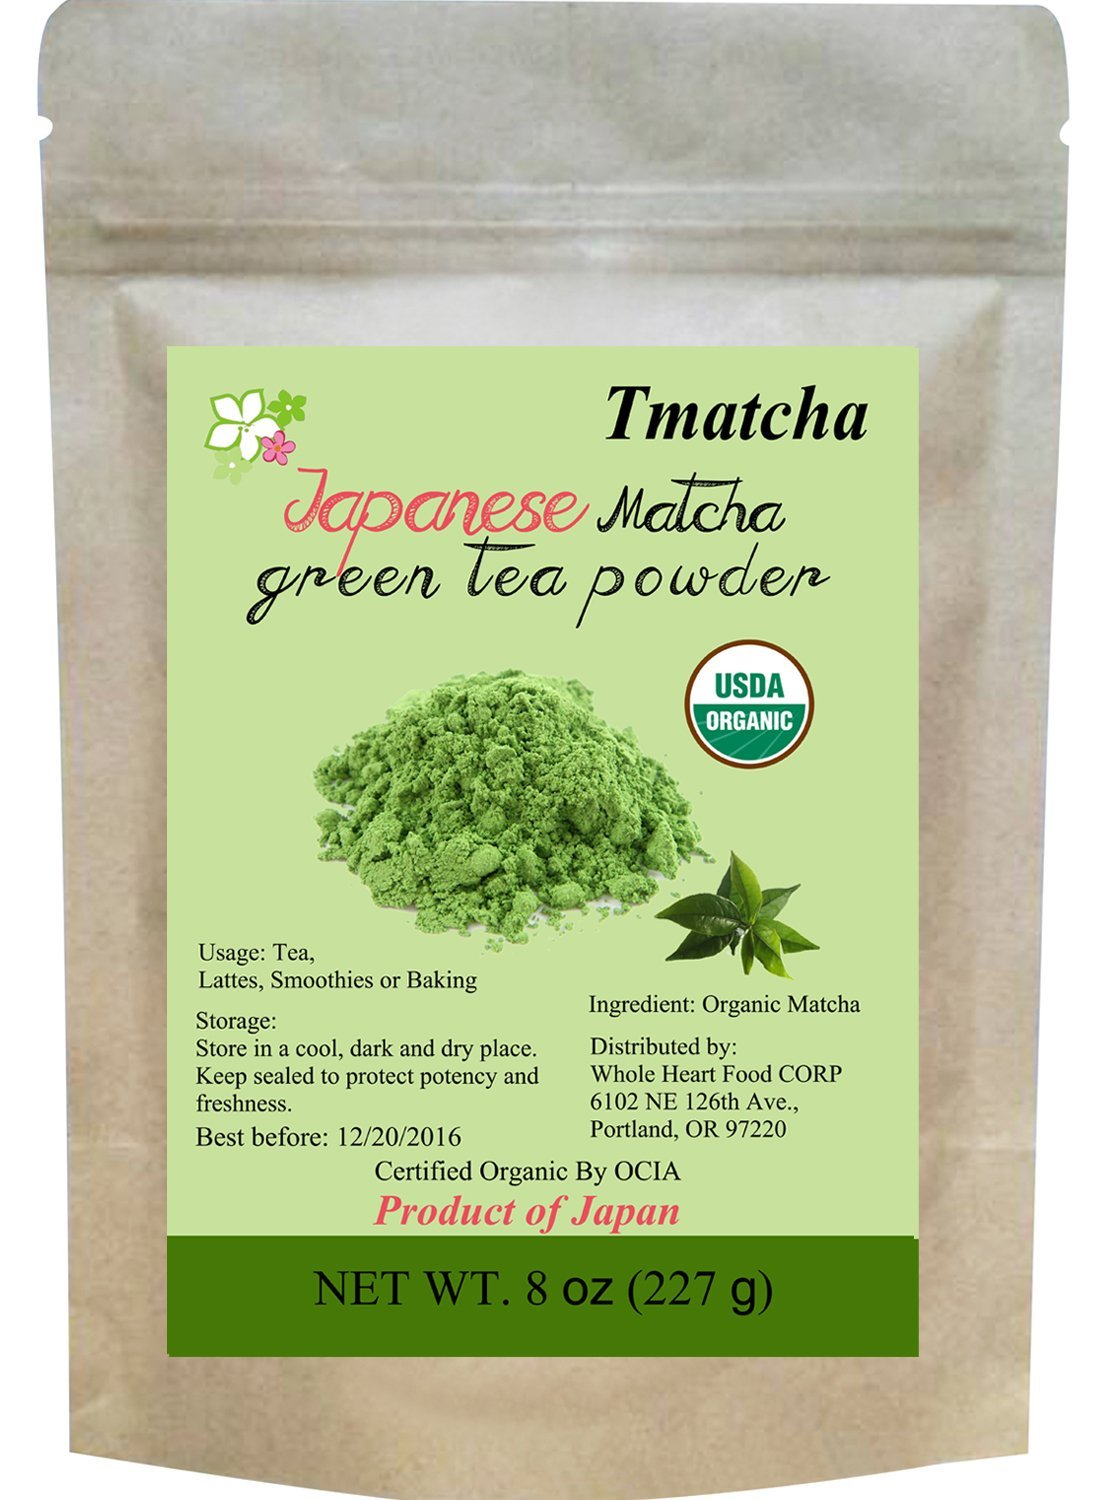 Tmatcha Organic Japanese Matcha Green Tea Powder USDA Organic Certification Culilary Grade Gluten Free and Vegan 8 oz(227 g)